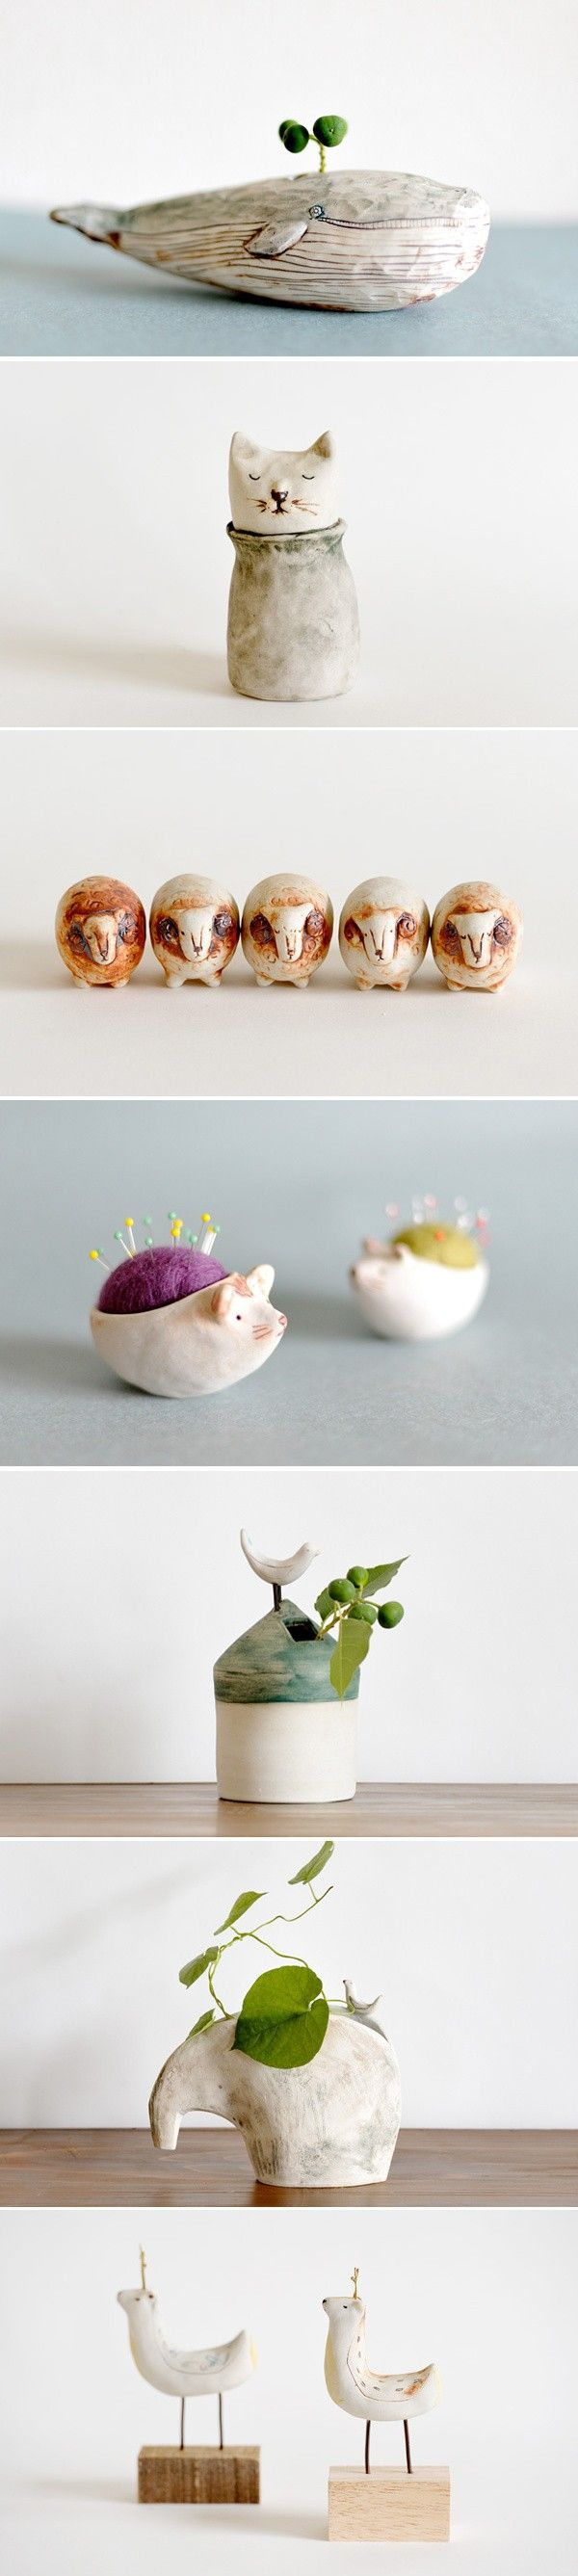 Good ideas to make clay sculptures as a vase or pincushion with felted inside! ♥